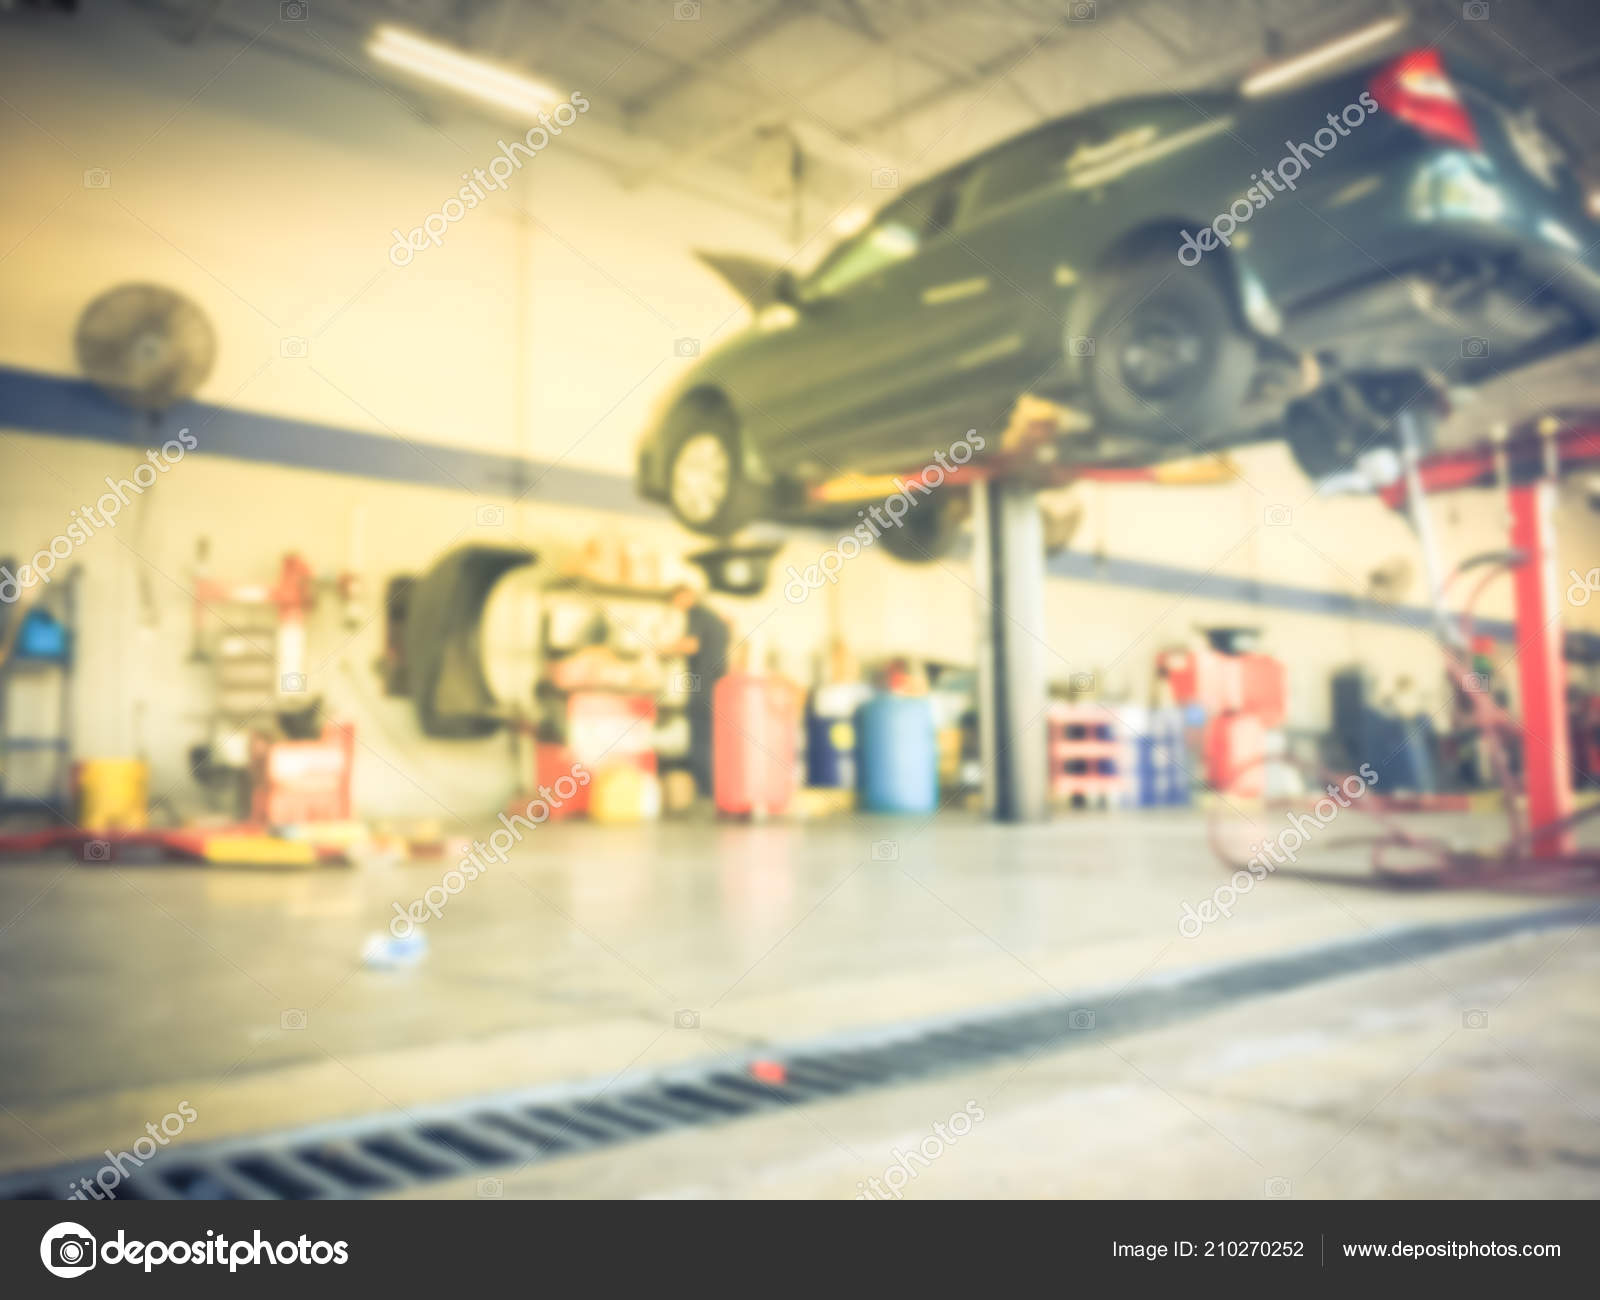 Motion Blurred Abstract Mechanic Changing Oil Lifted Car Auto Shop